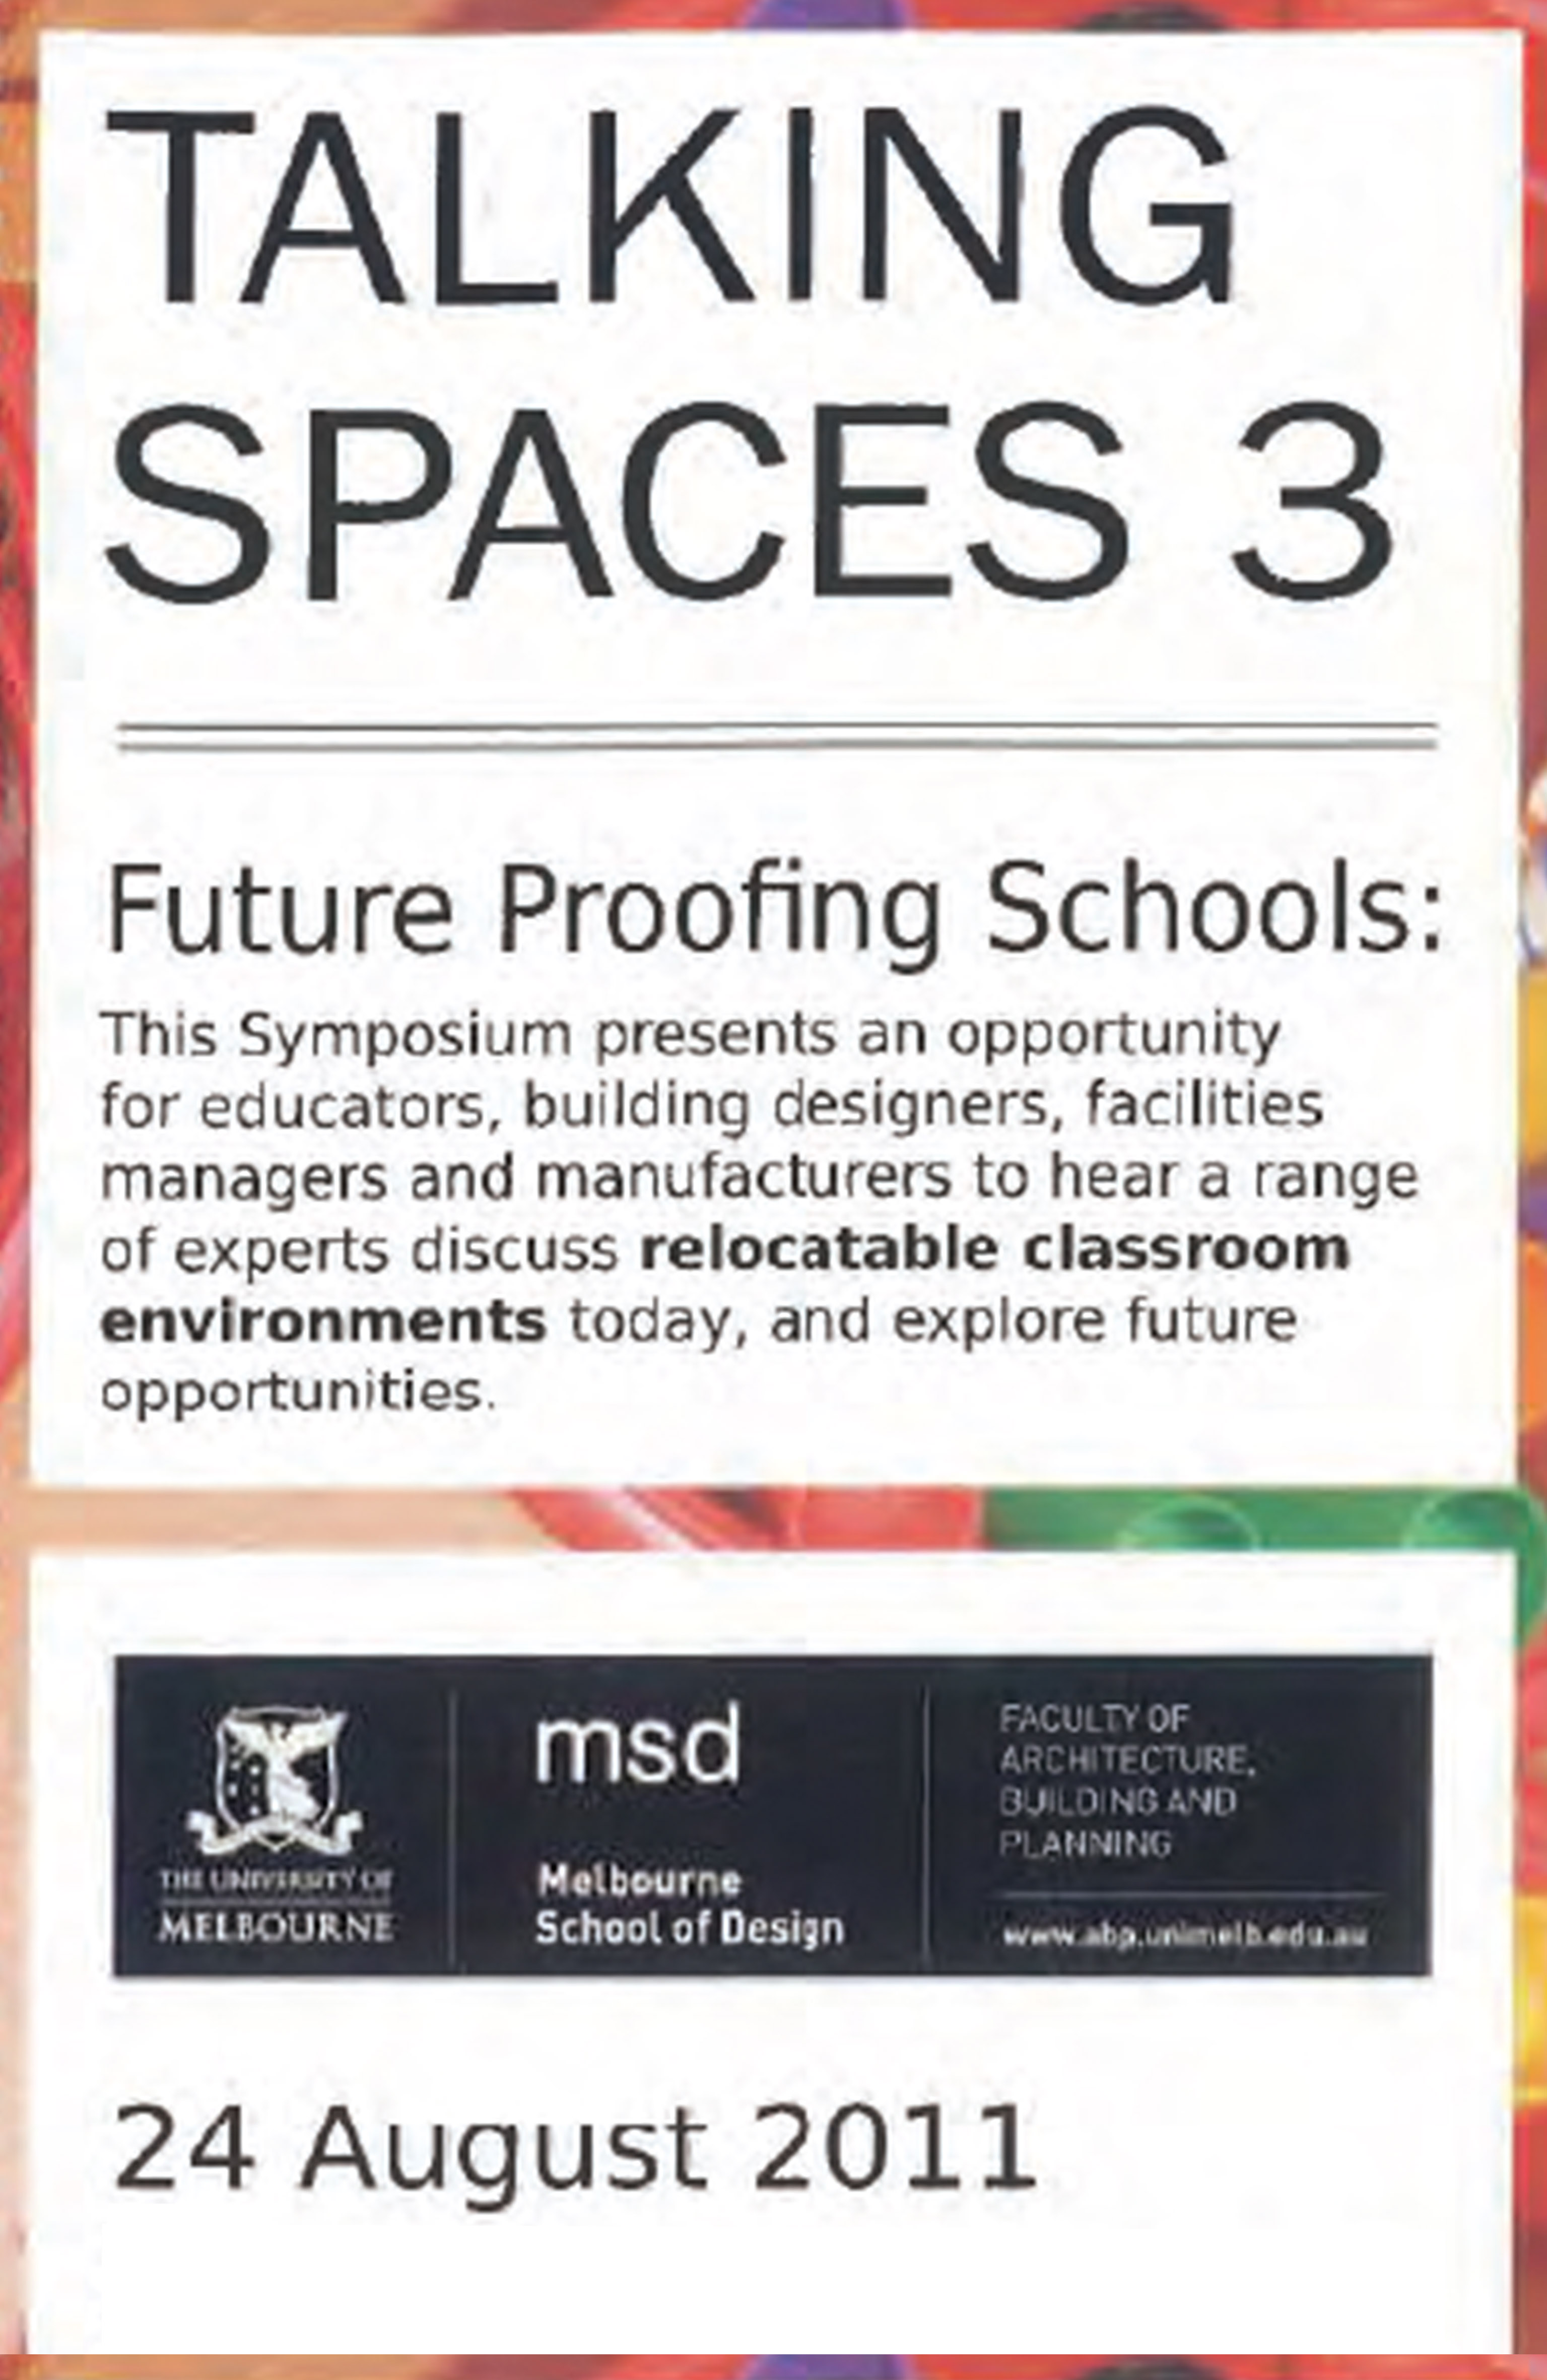 Talking Spaces 3 Program